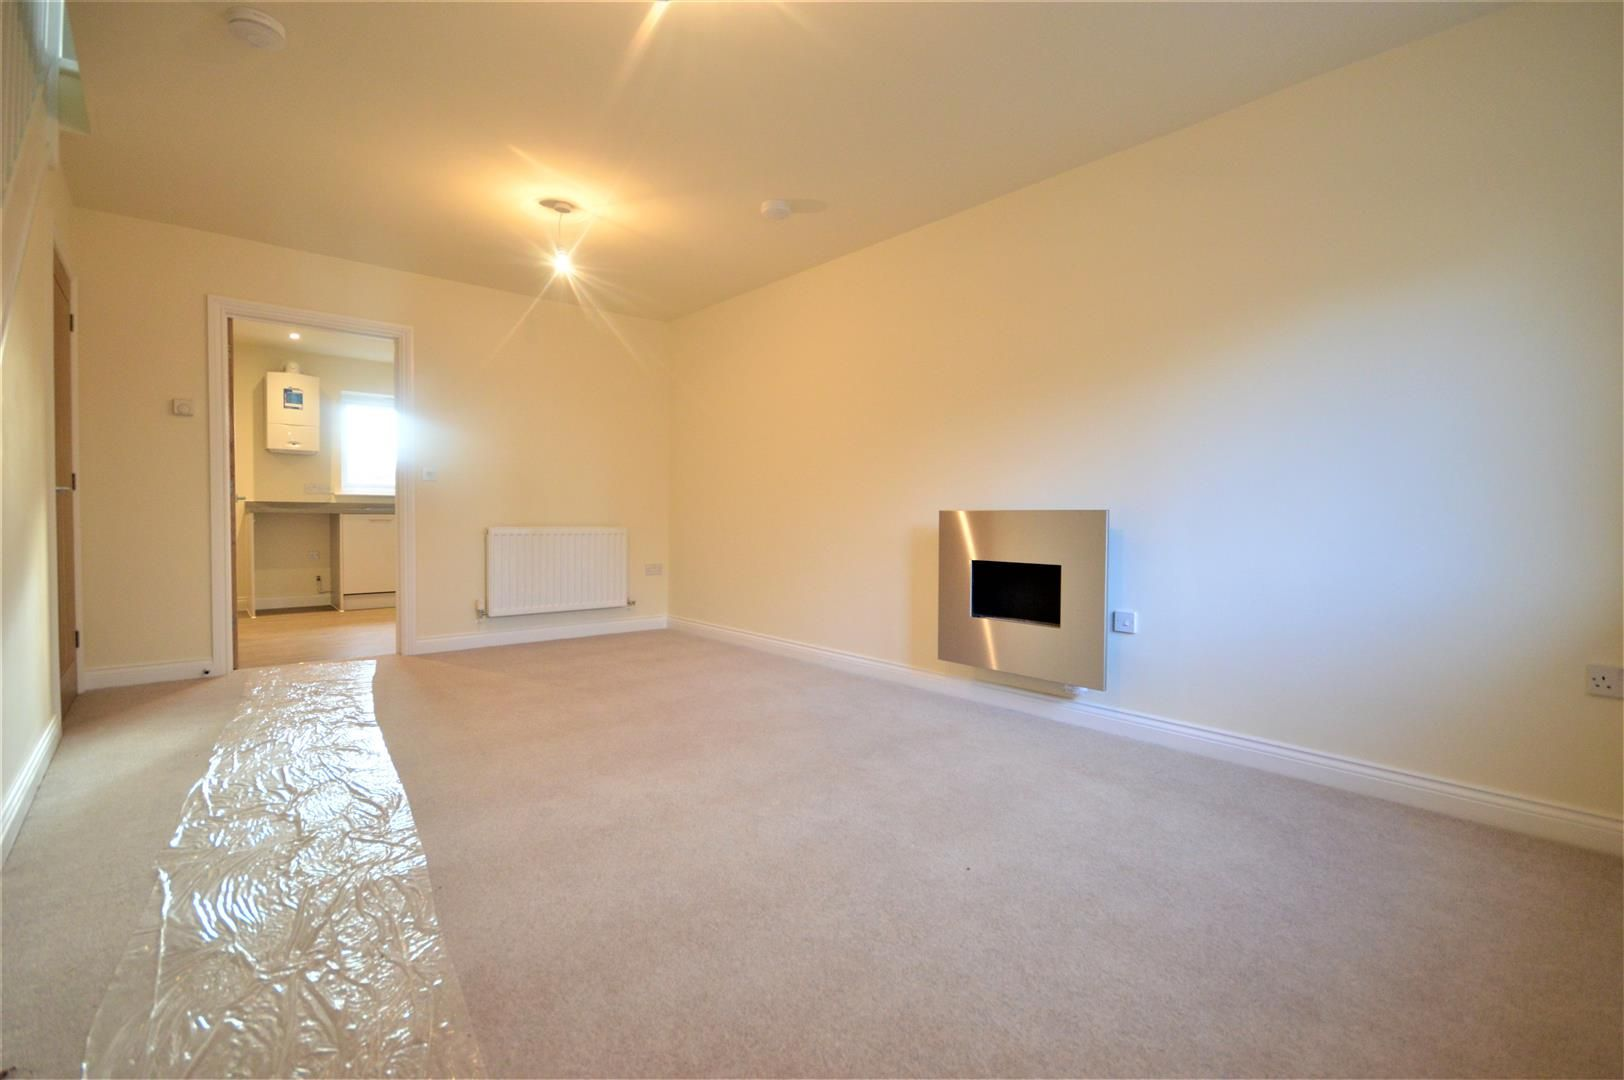 2 bed terraced for sale in Kingsland 4